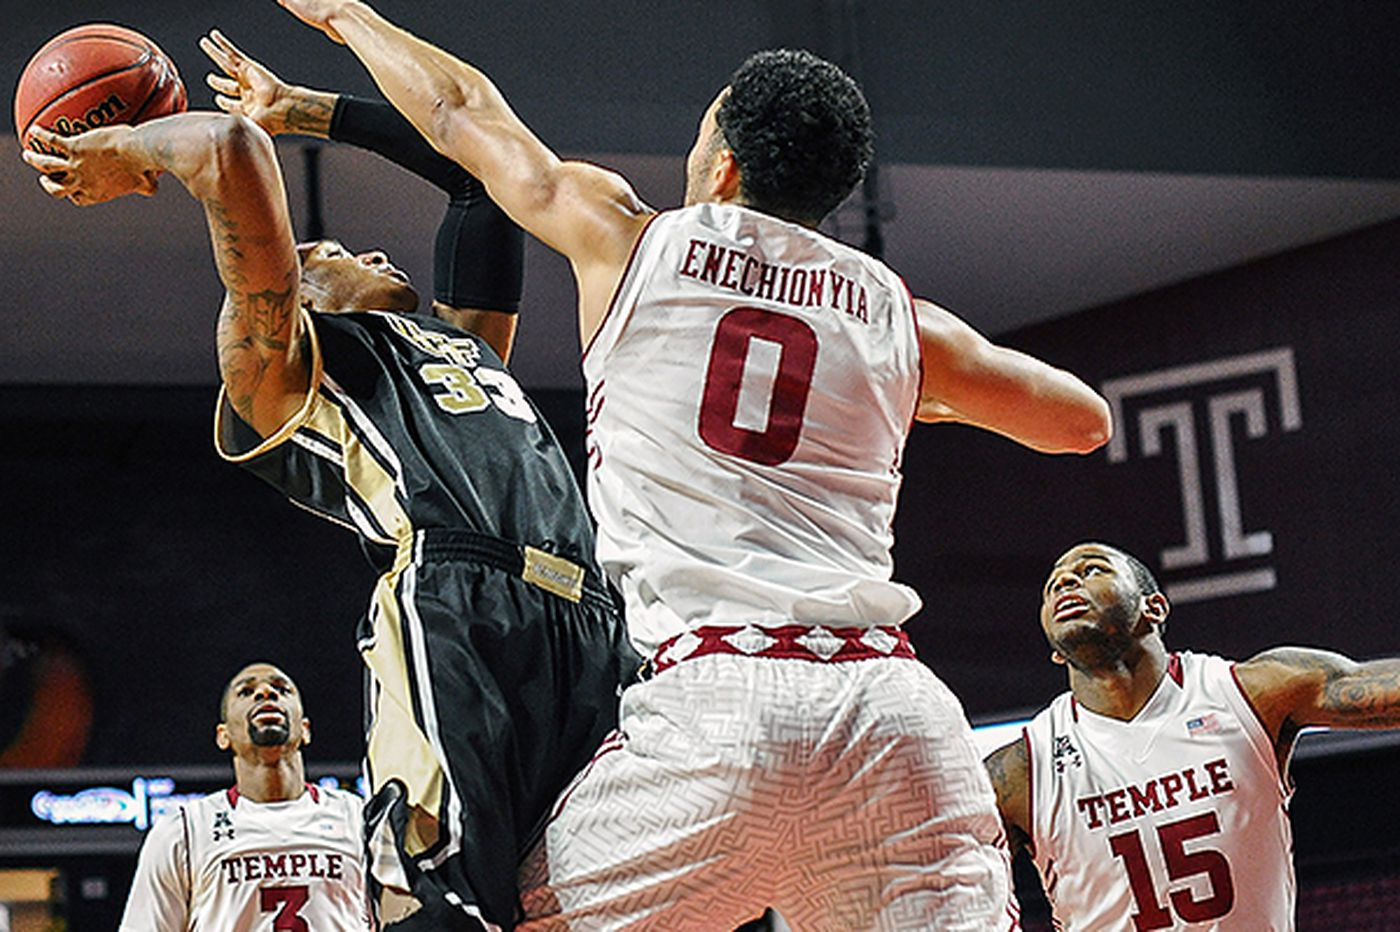 Armed with Enechionyia, Temple takes on Memphis